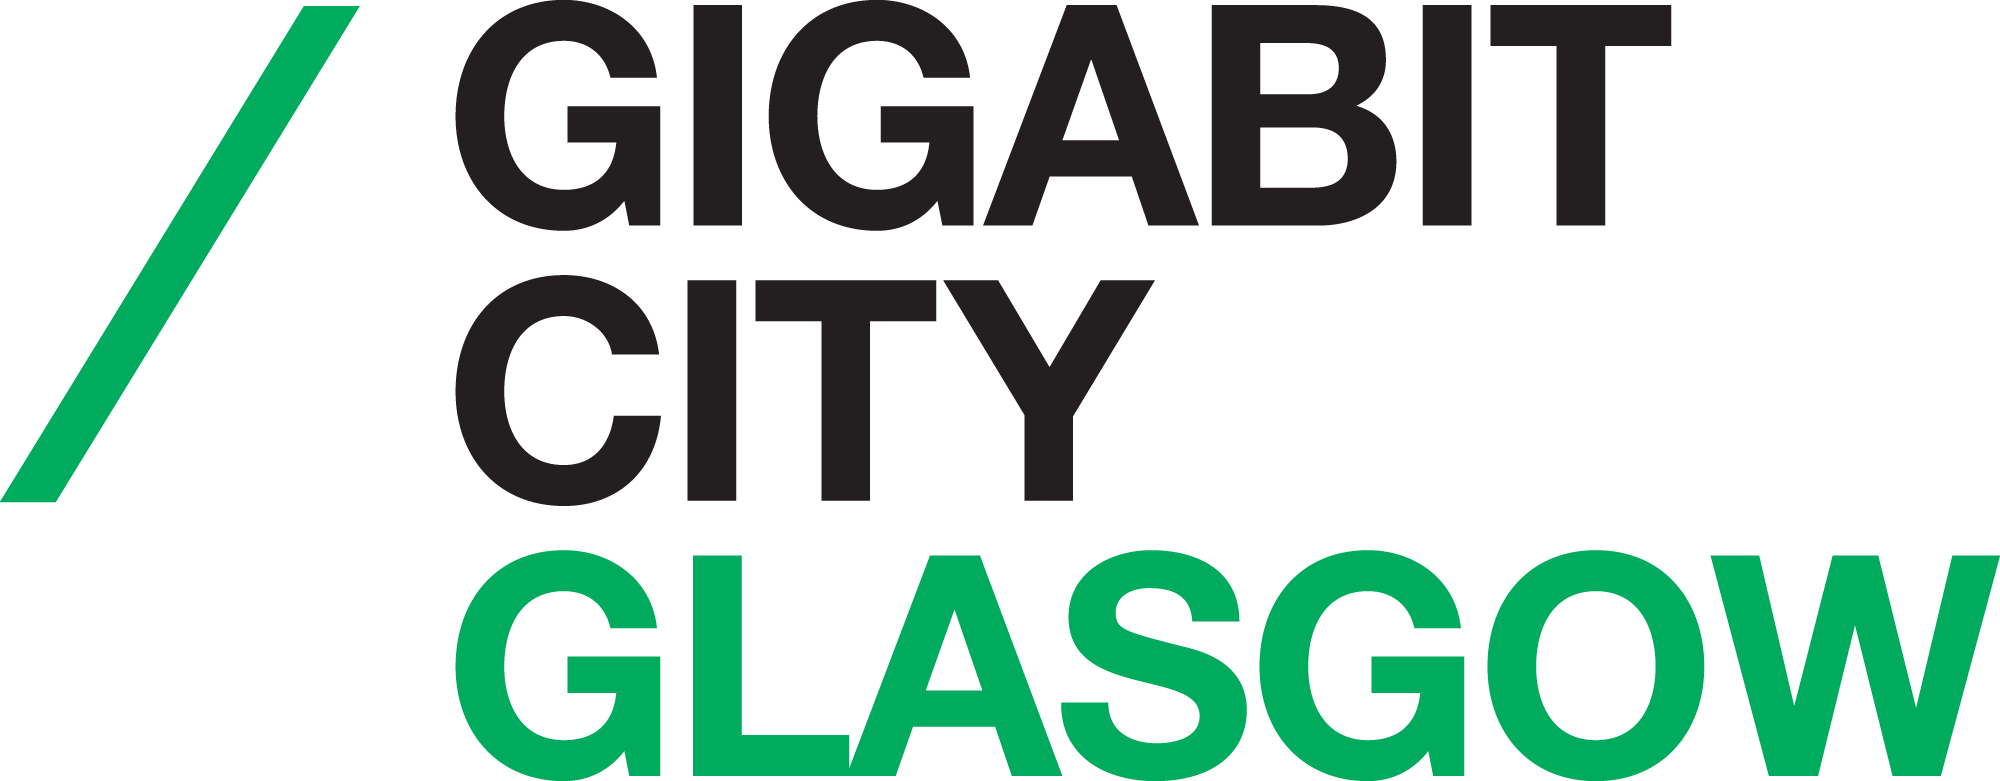 Gigabit City Glasgow logo